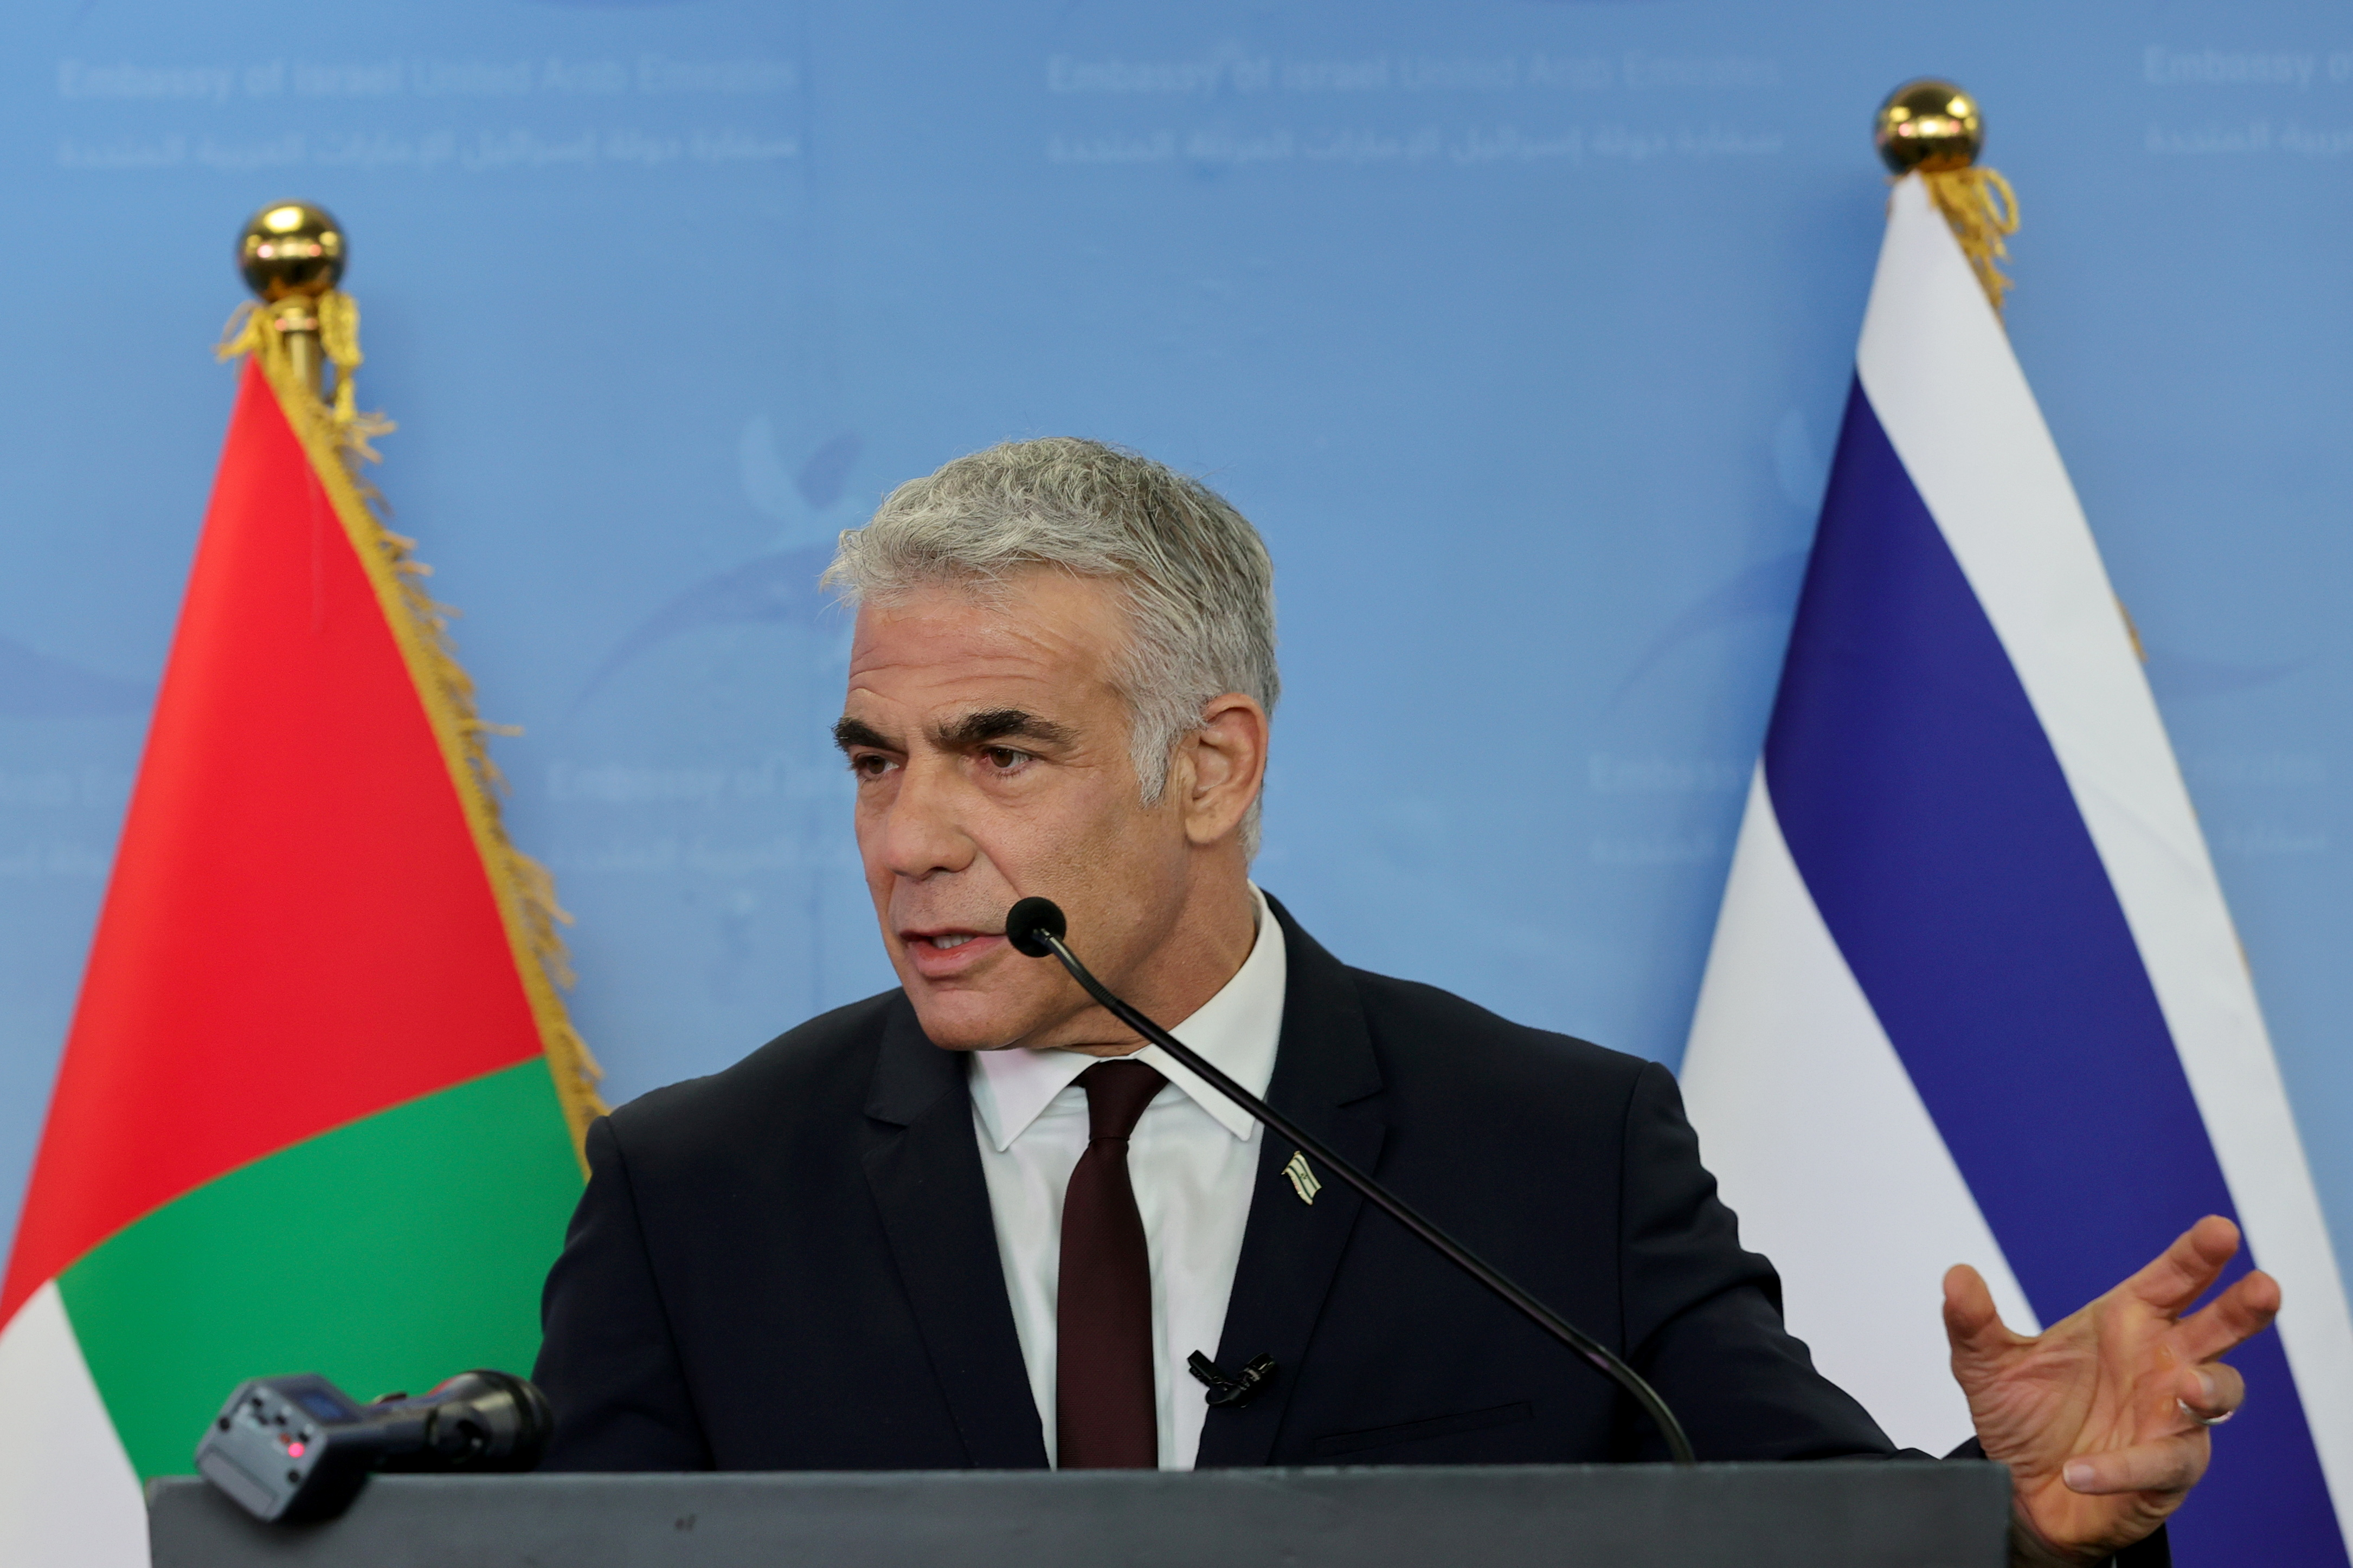 Israeli alternate Prime Minister and Foreign Minister Yair Lapid speaks during a news conference in Dubai, United Arab Emirates, June 30, 2021. REUTERS/Christopher Pike